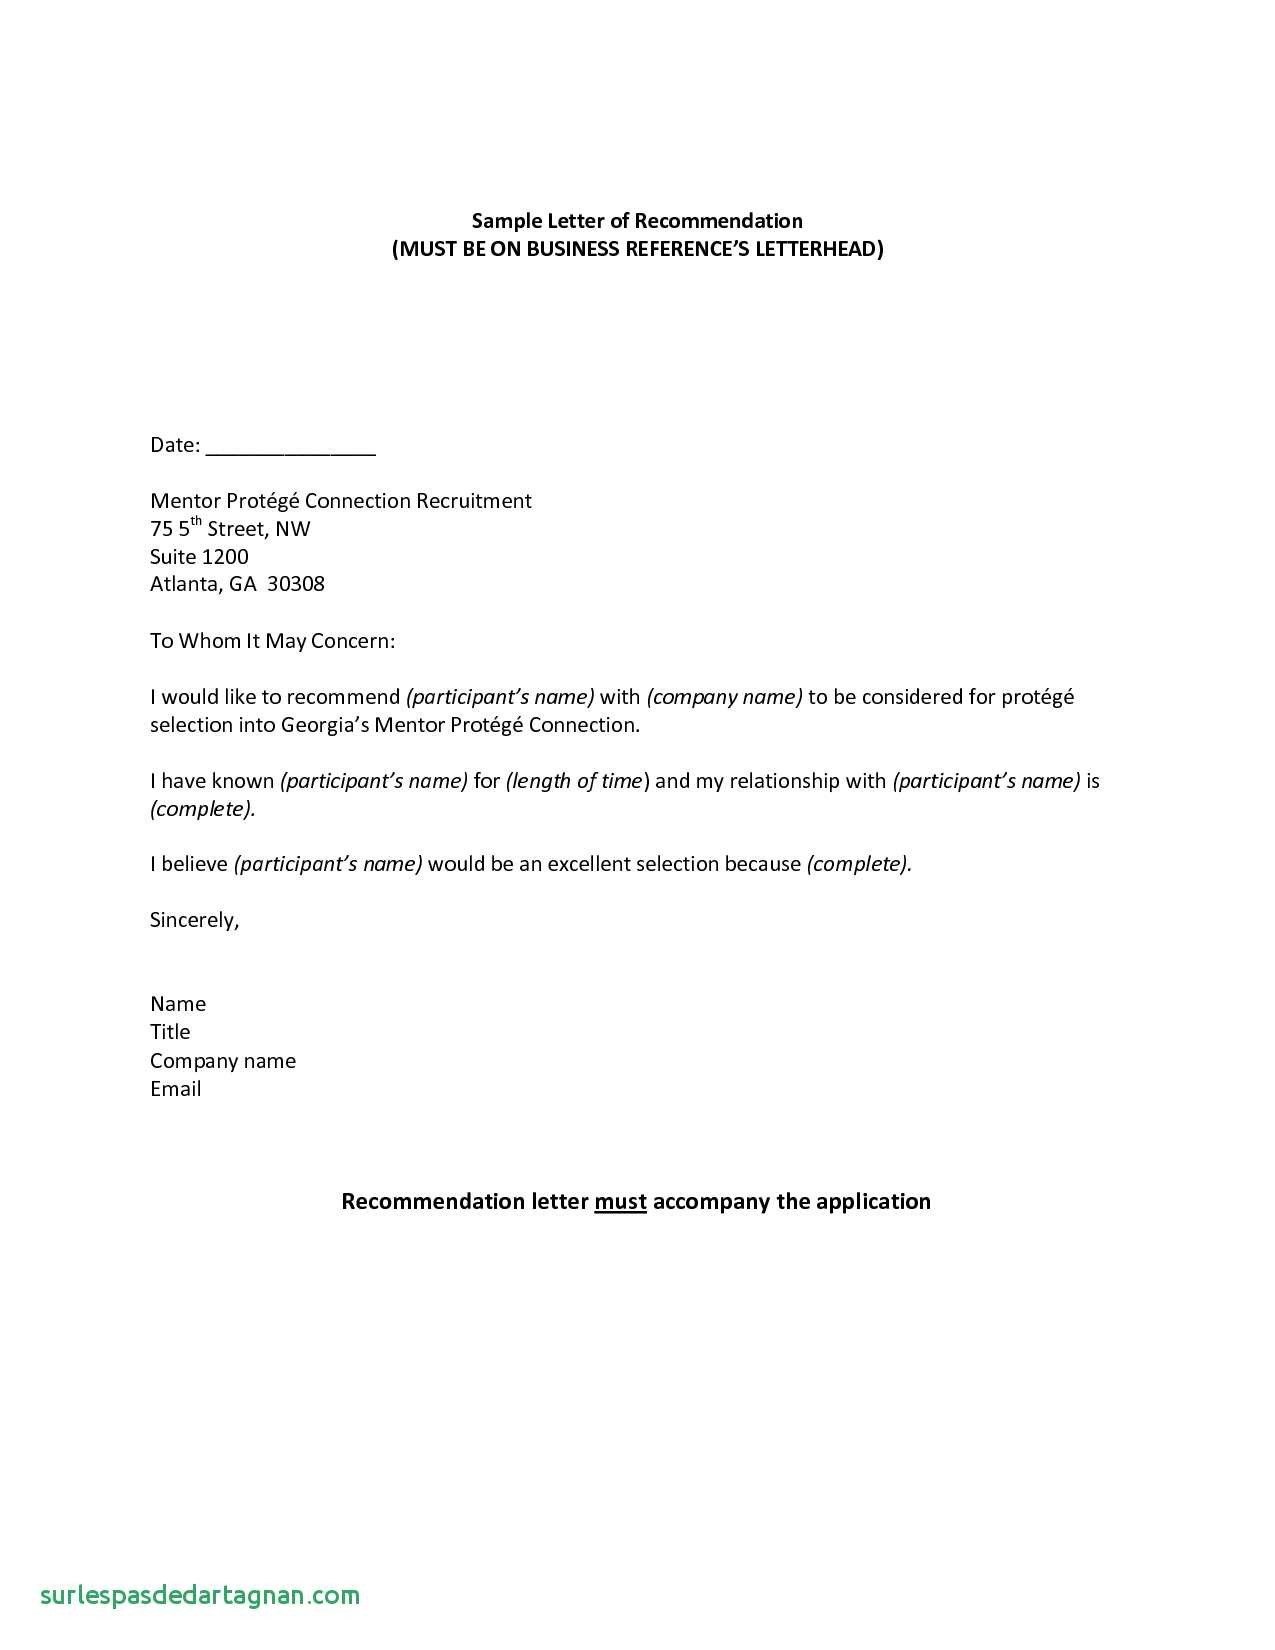 Business reference letter template word samples letter templates business reference letter template word business re mendation letter template save 31 new reference letter accmission Image collections